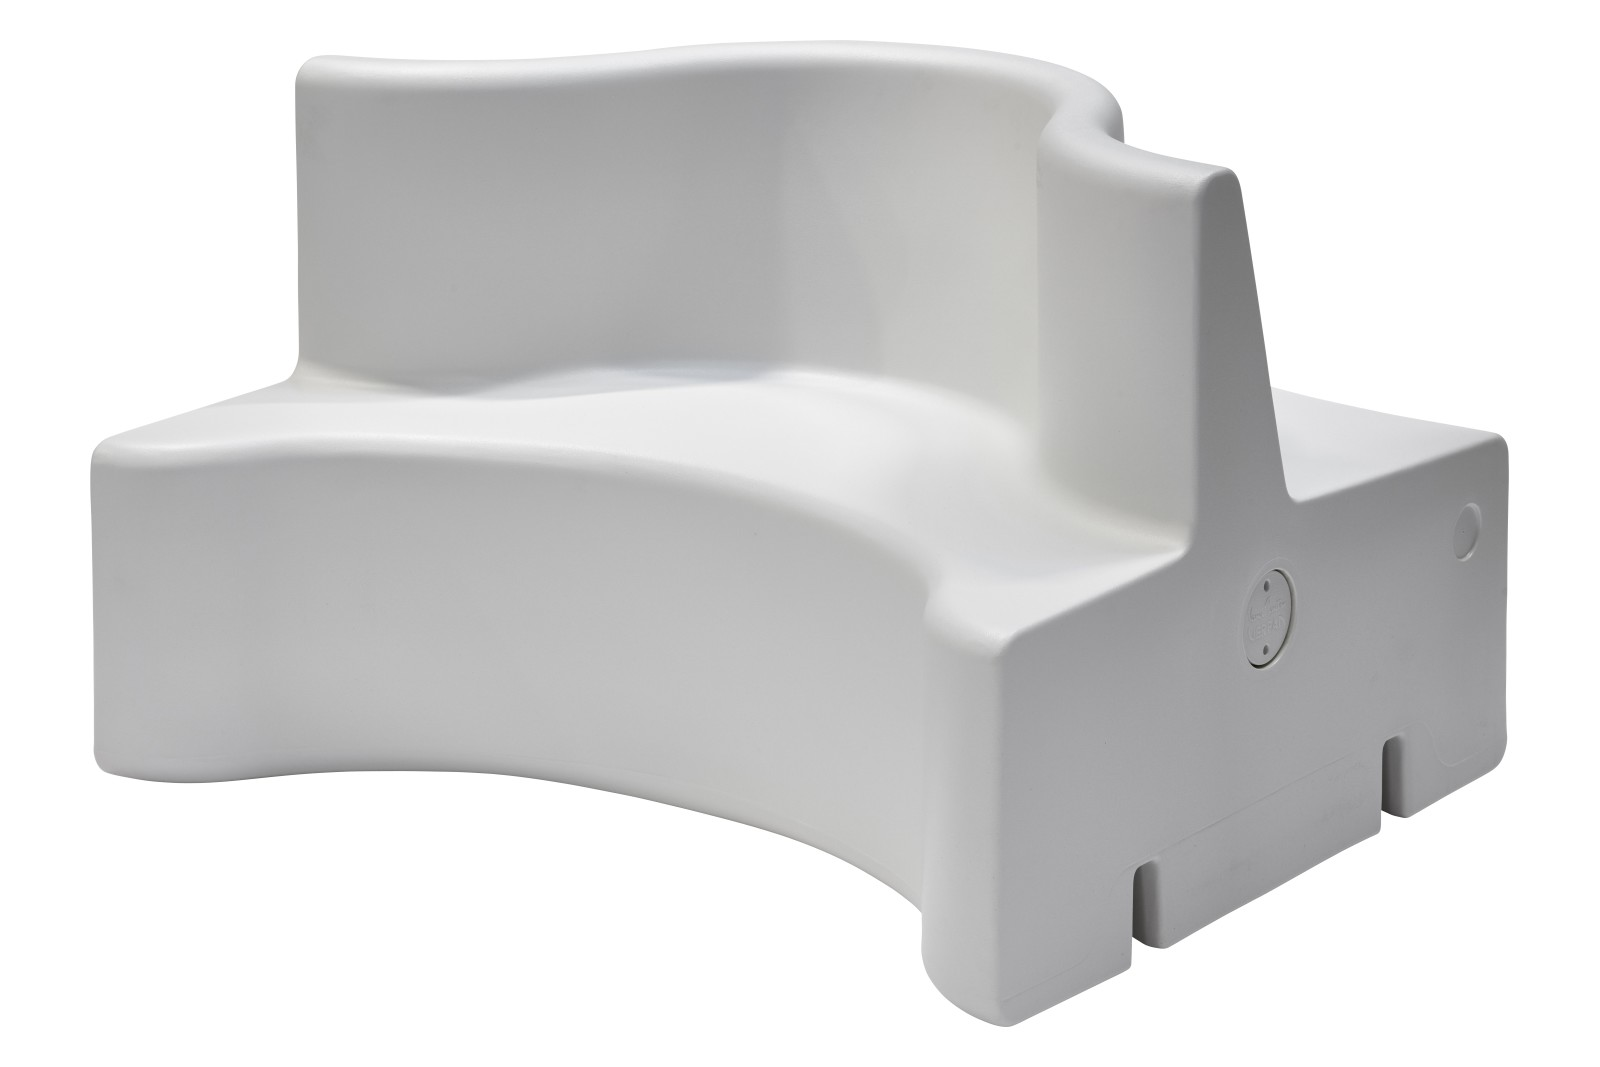 Cloverleaf In & Outdoor Sofa - Extension Unit 27 Opal White thumbnail